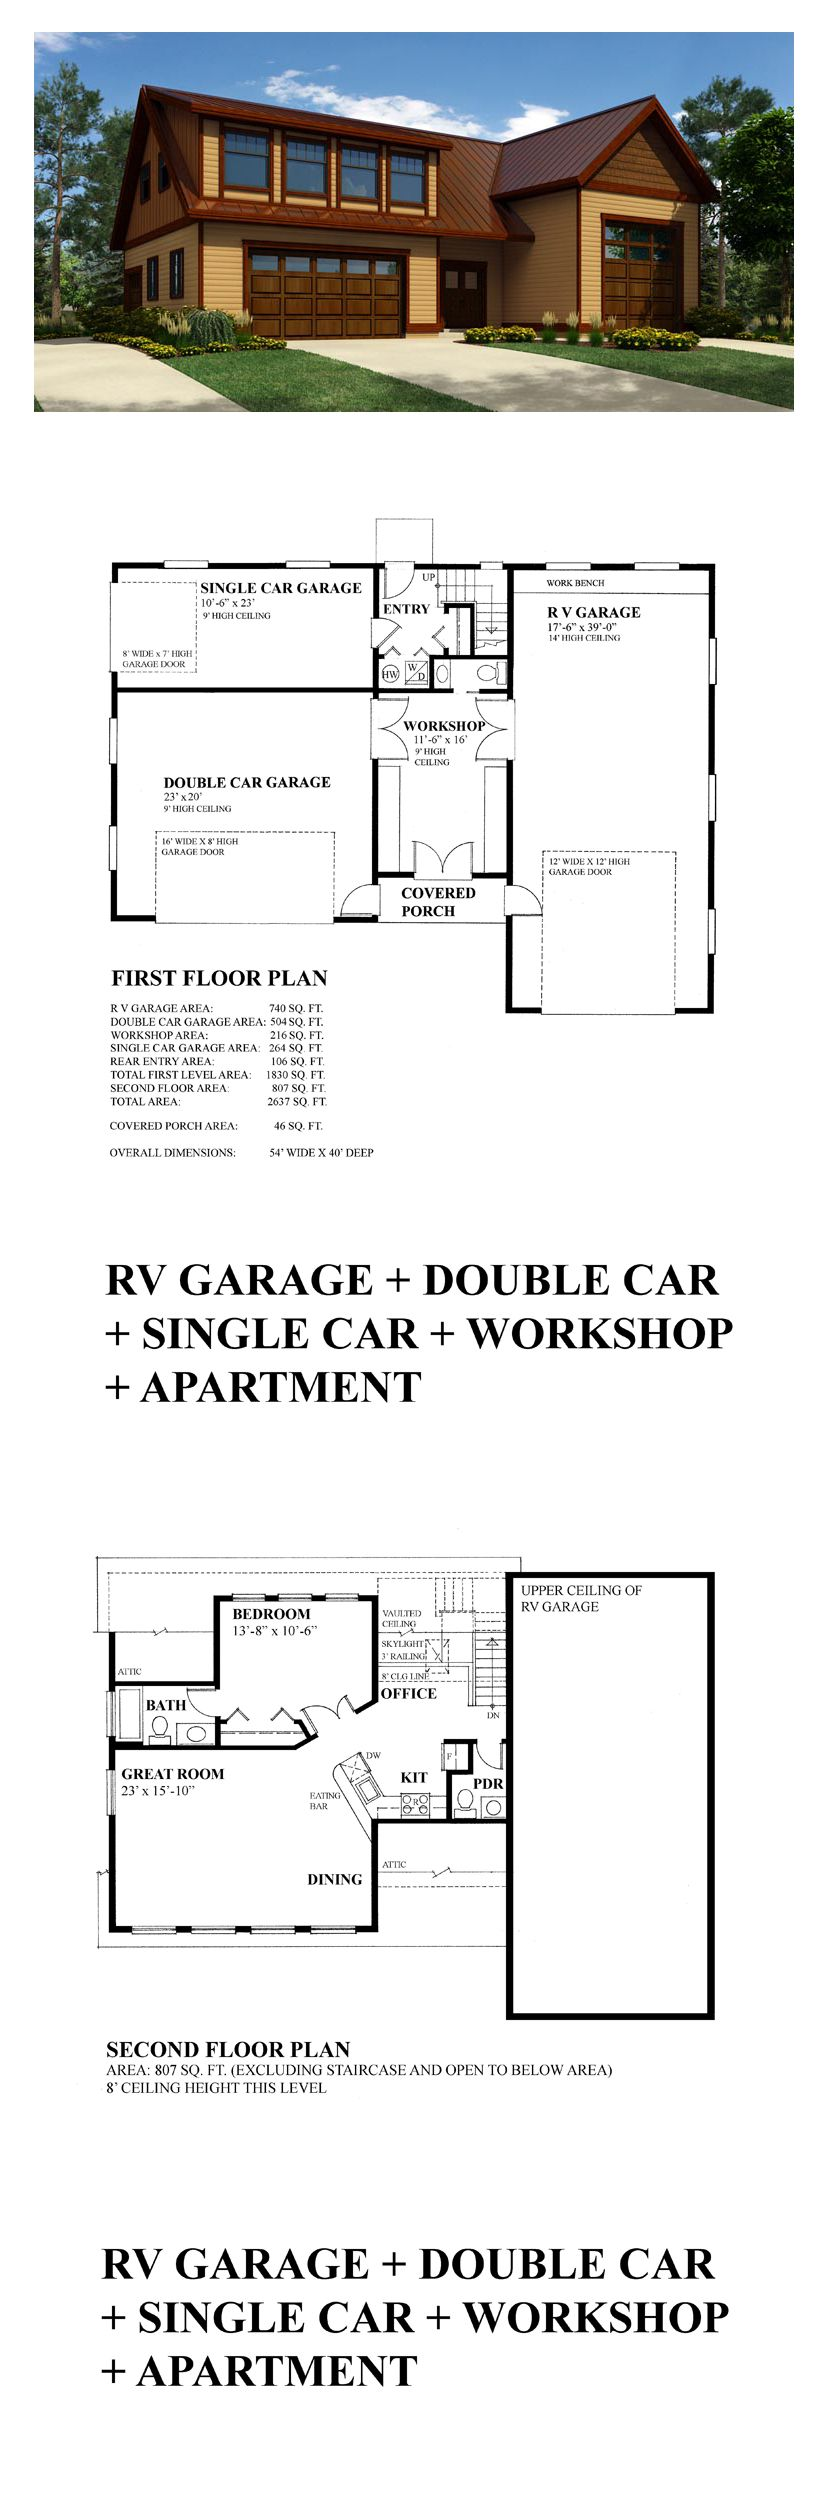 Garage apartment plan 76029 total living area 913 sq for Garage apartment plans nz